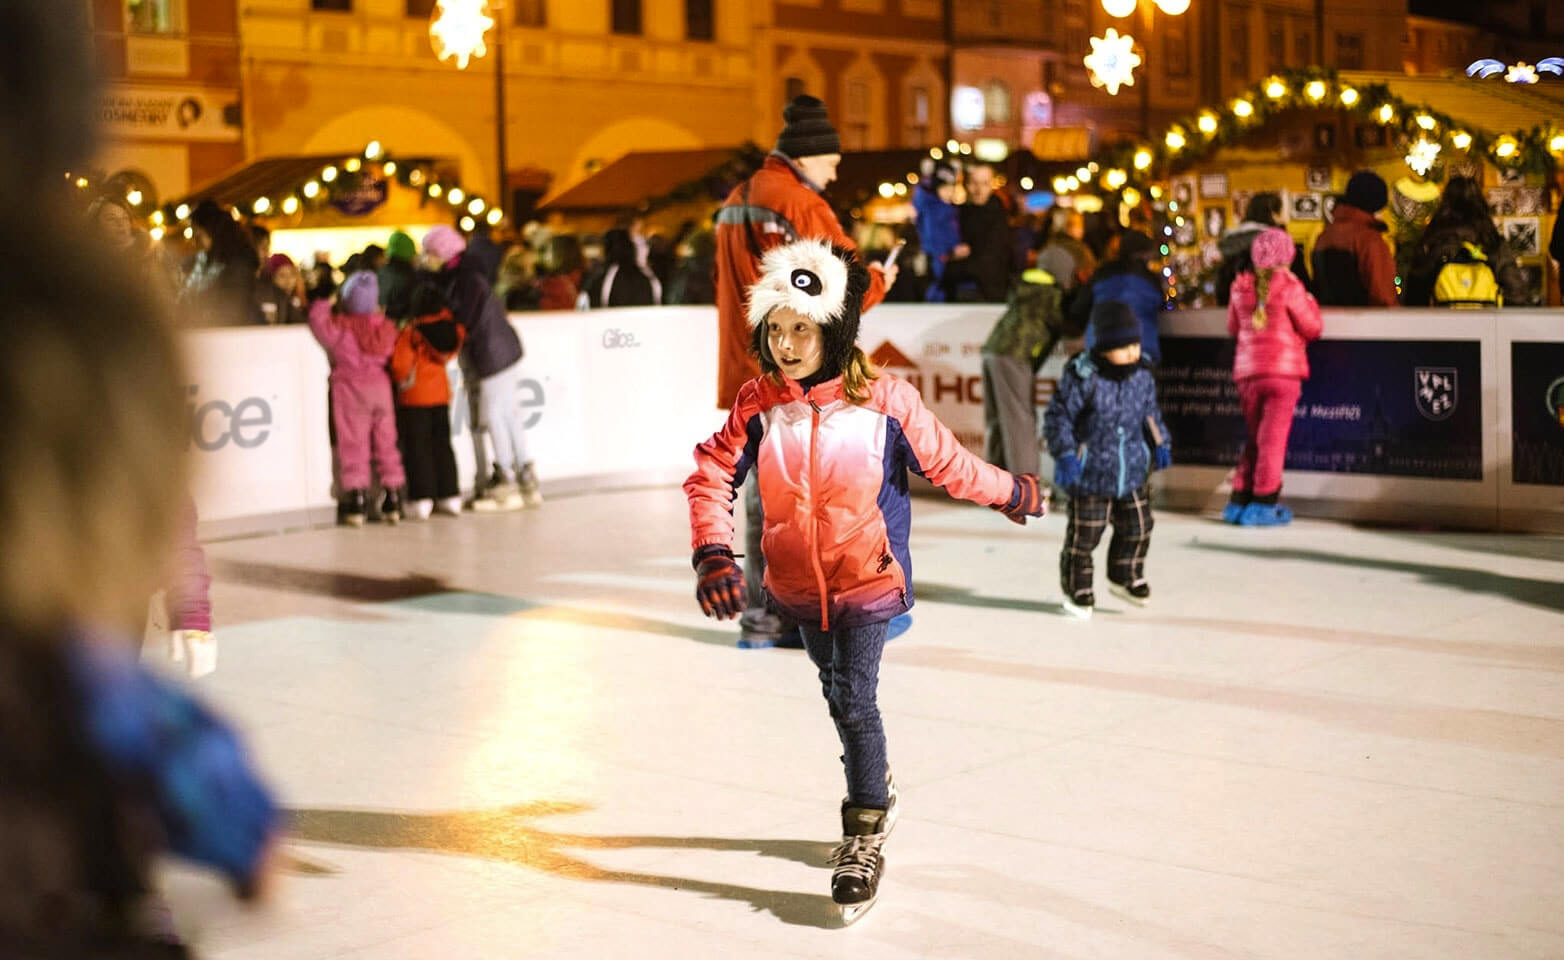 Girl skating on artificial Christmas rink